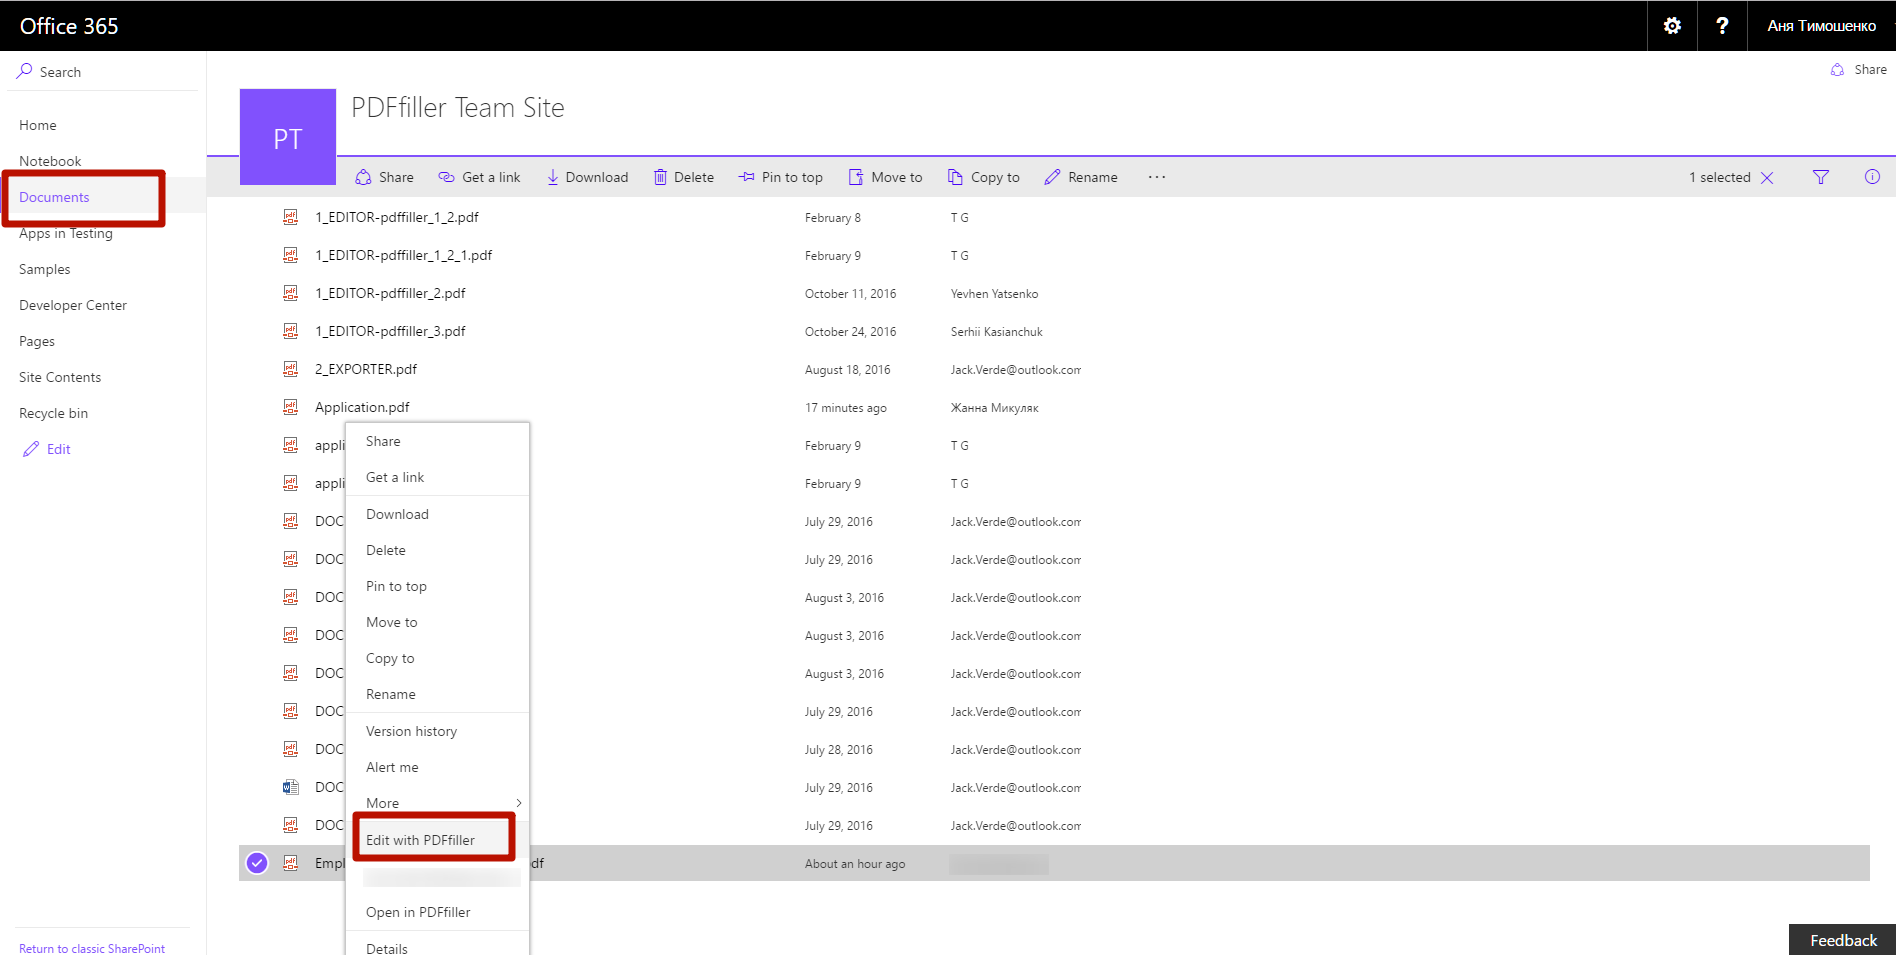 pdfFiller integration with SharePoint